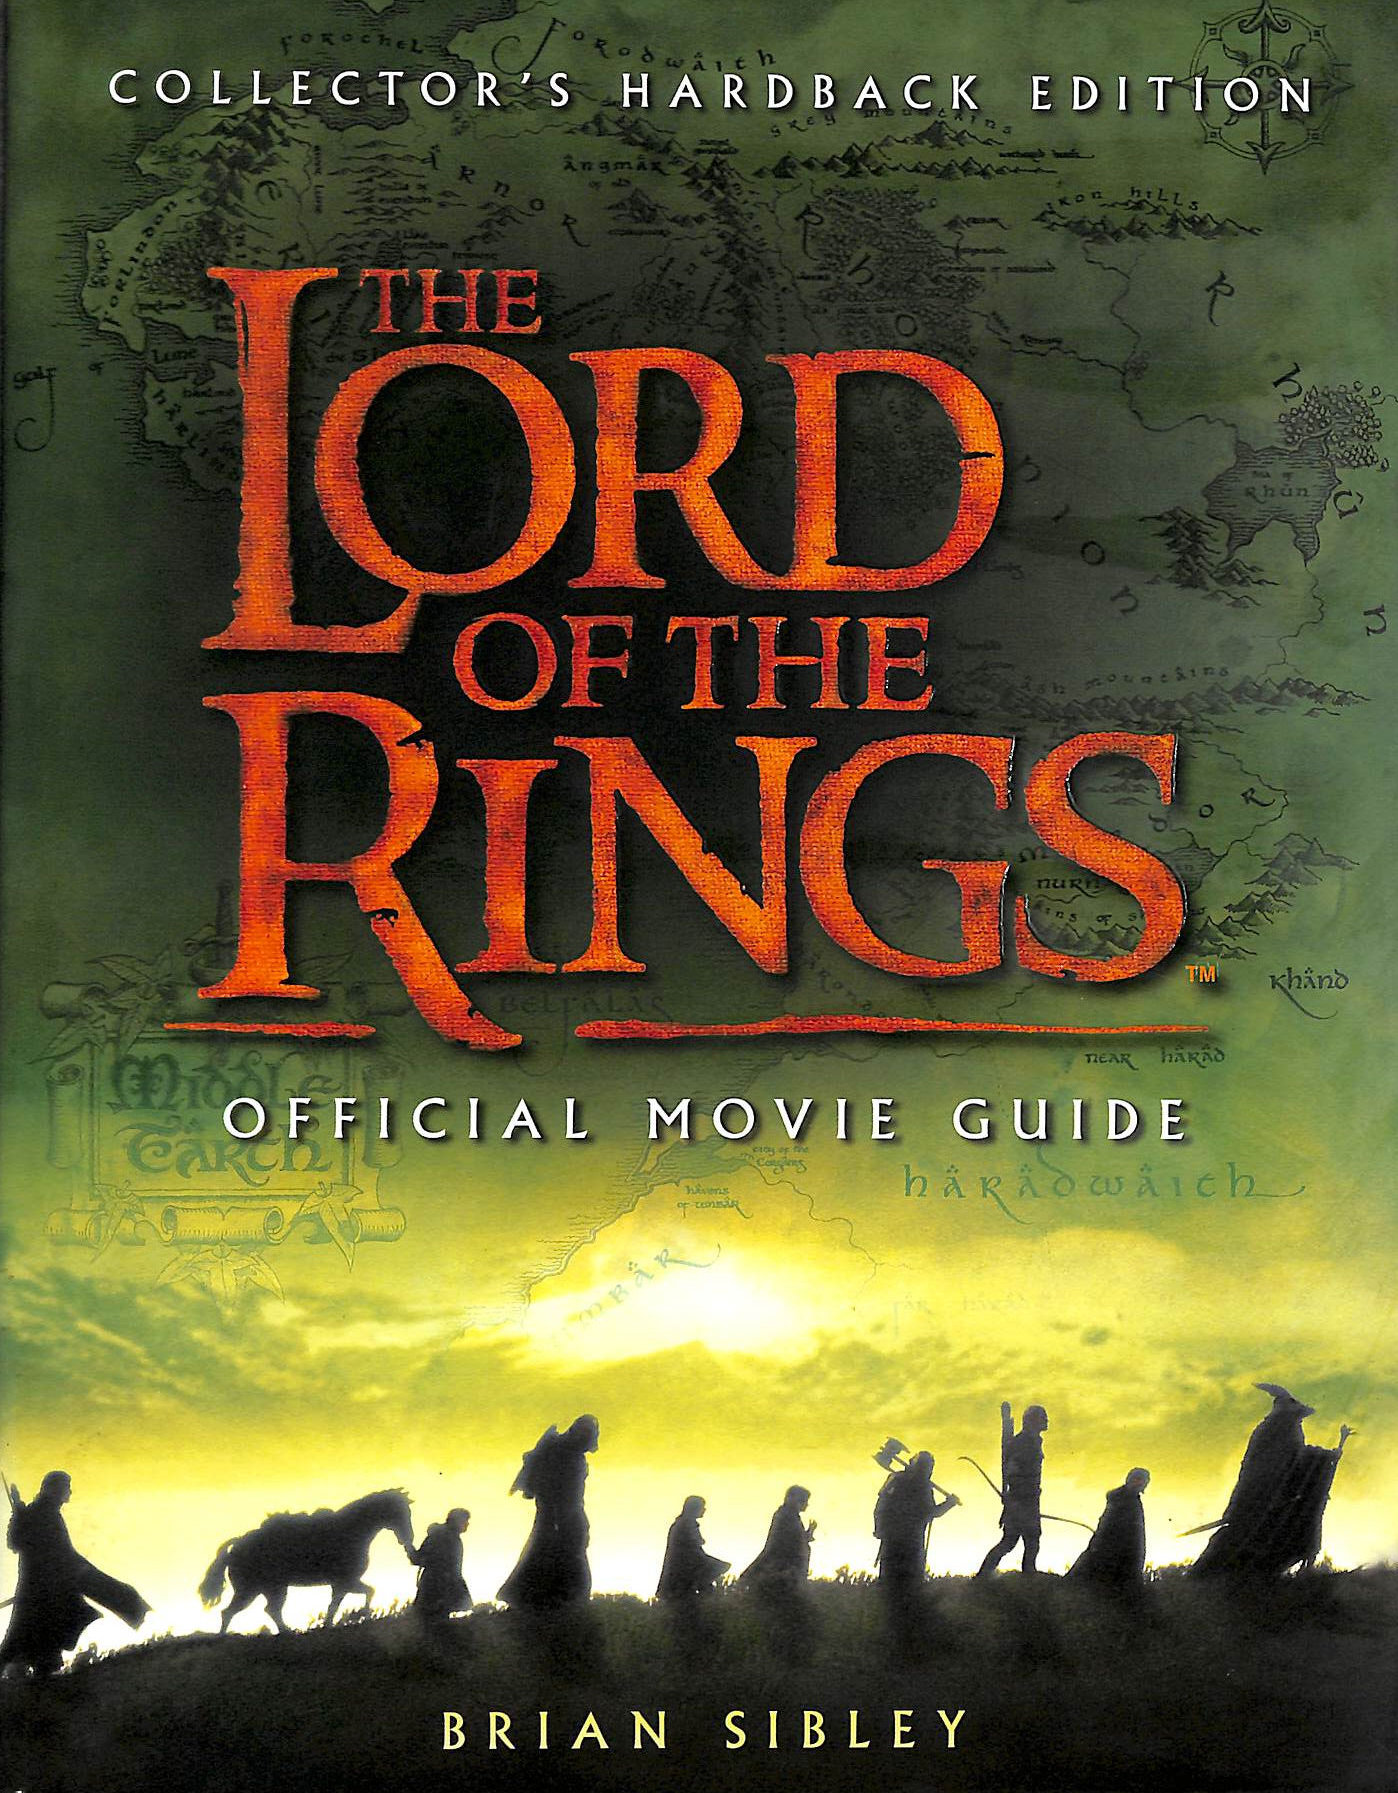 Image for The Lord Of The Rings Official Movie Guide (Limited Edition)